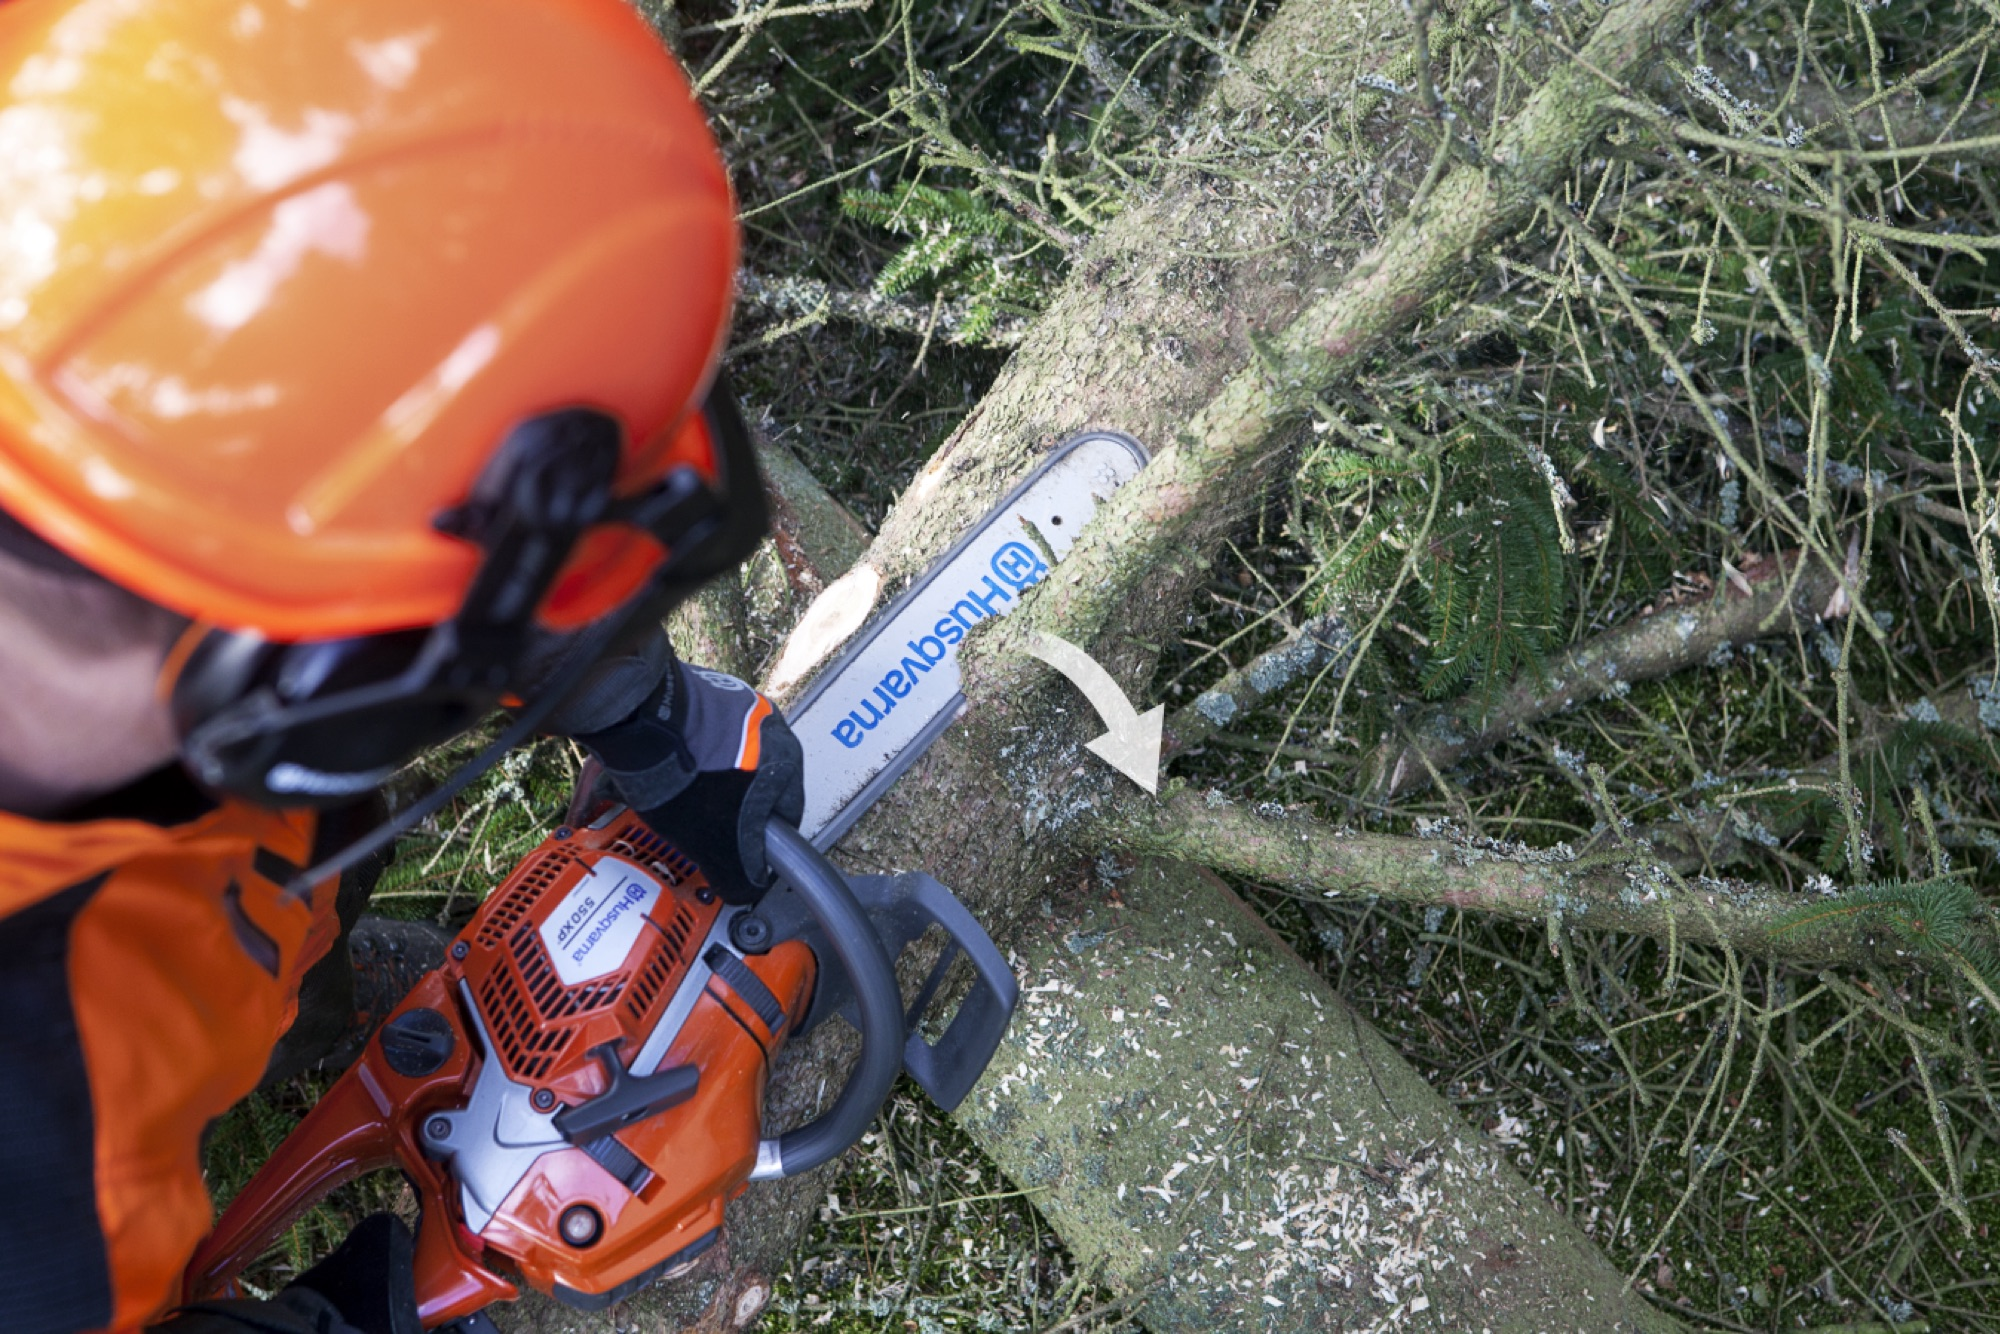 Forestry working limbing a branch at the top side of the tree again, cutting from left to right